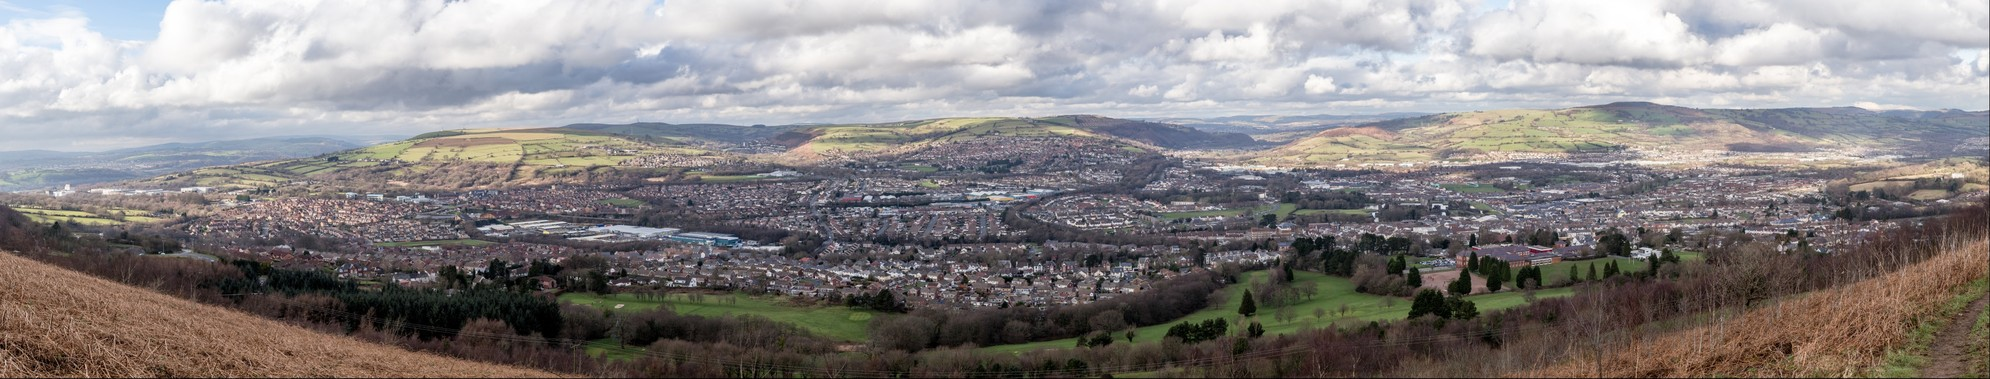 View from Caerphilly Mountain_2